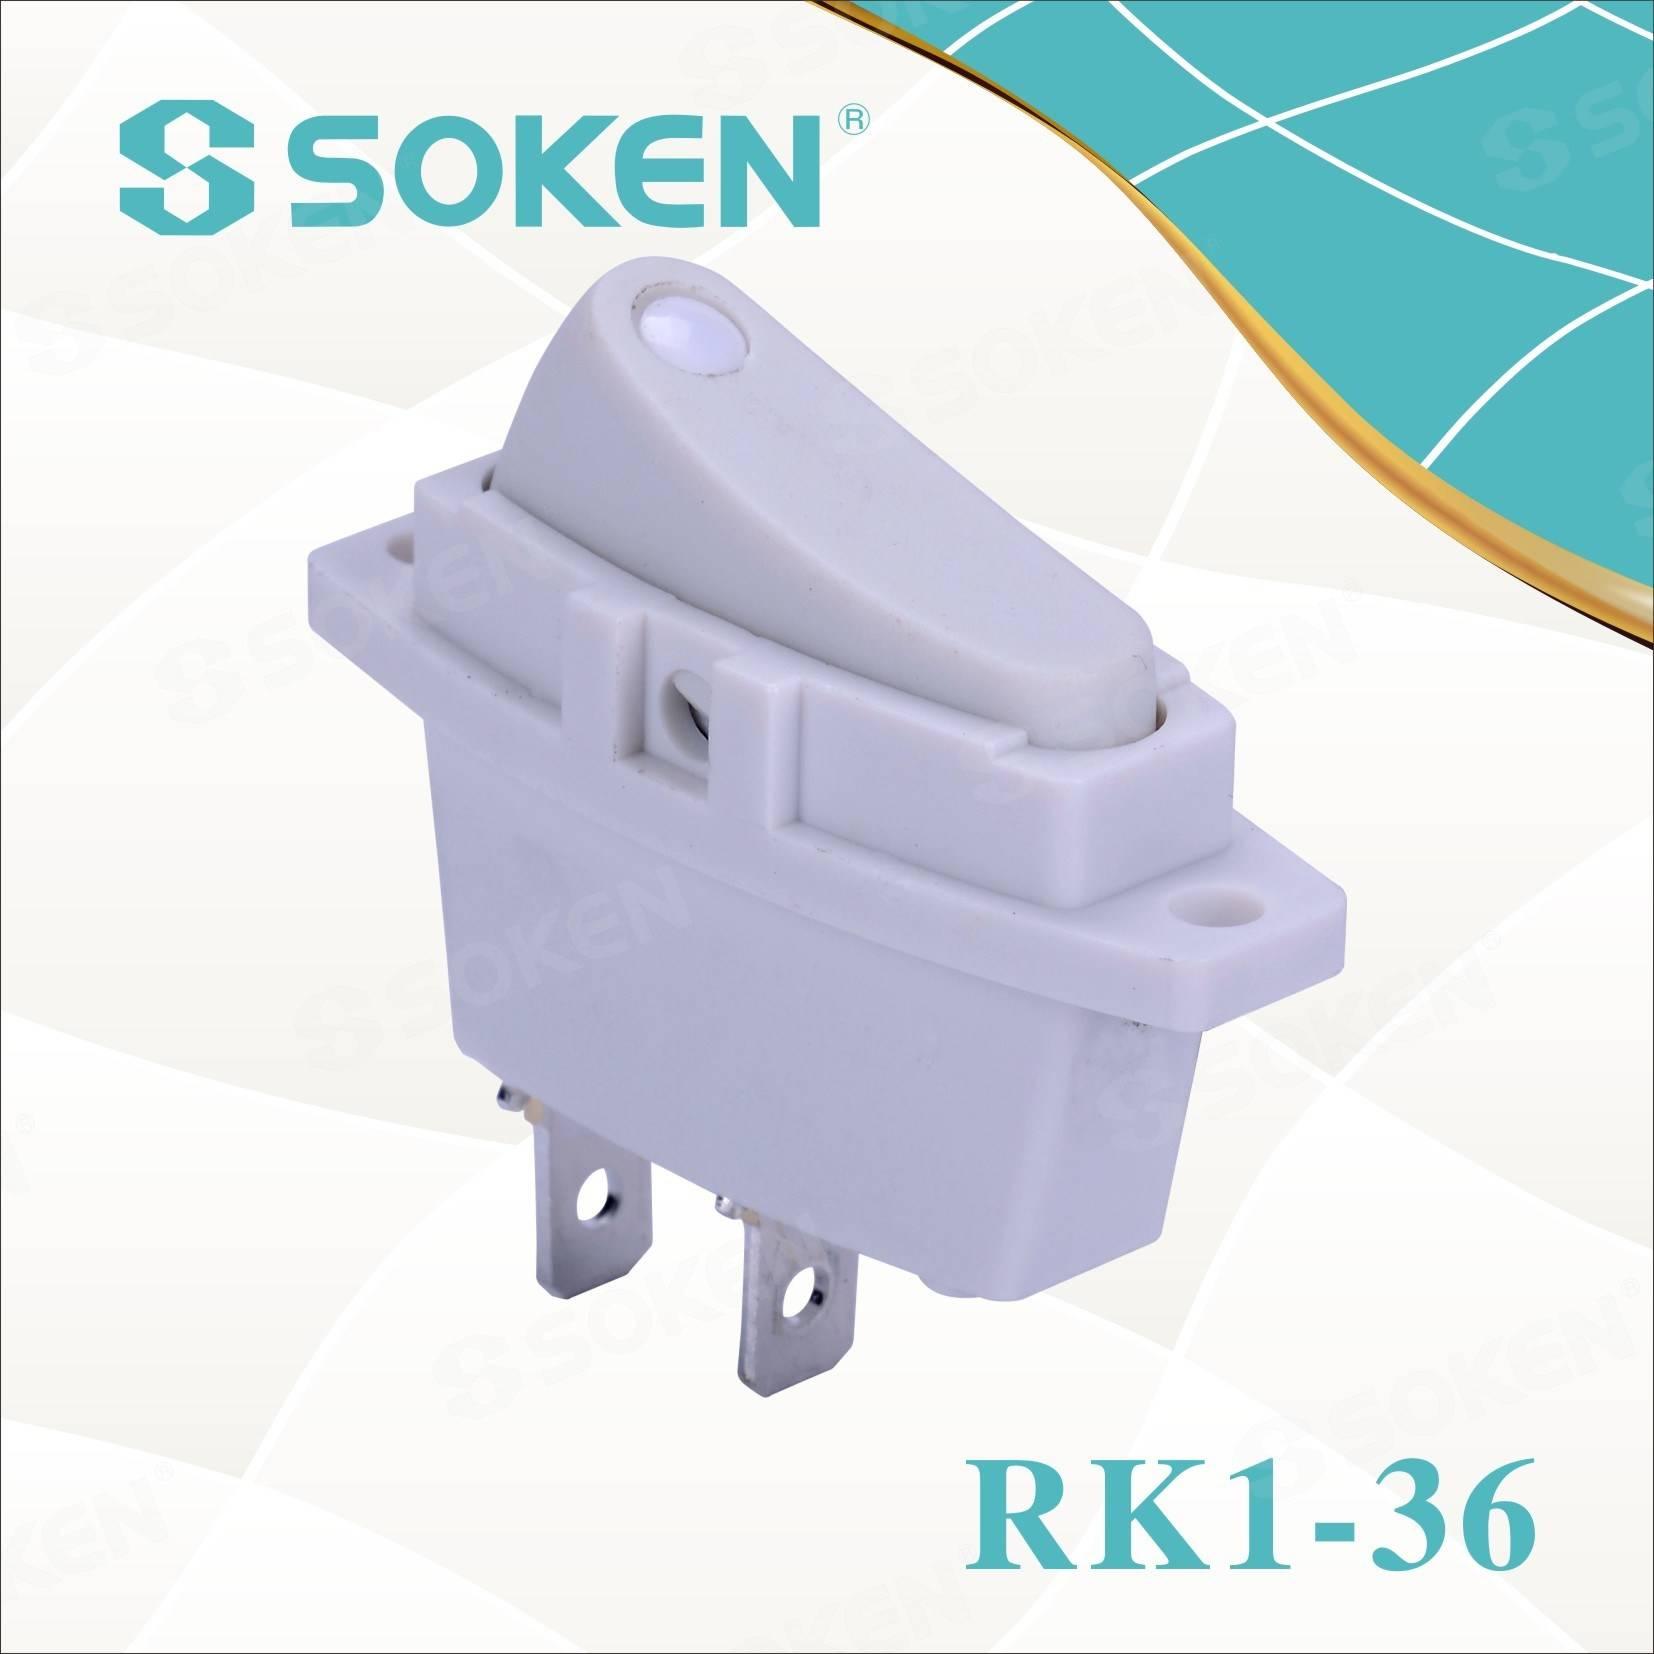 Soken Rk1-36 1X1 na off Rocker Switch